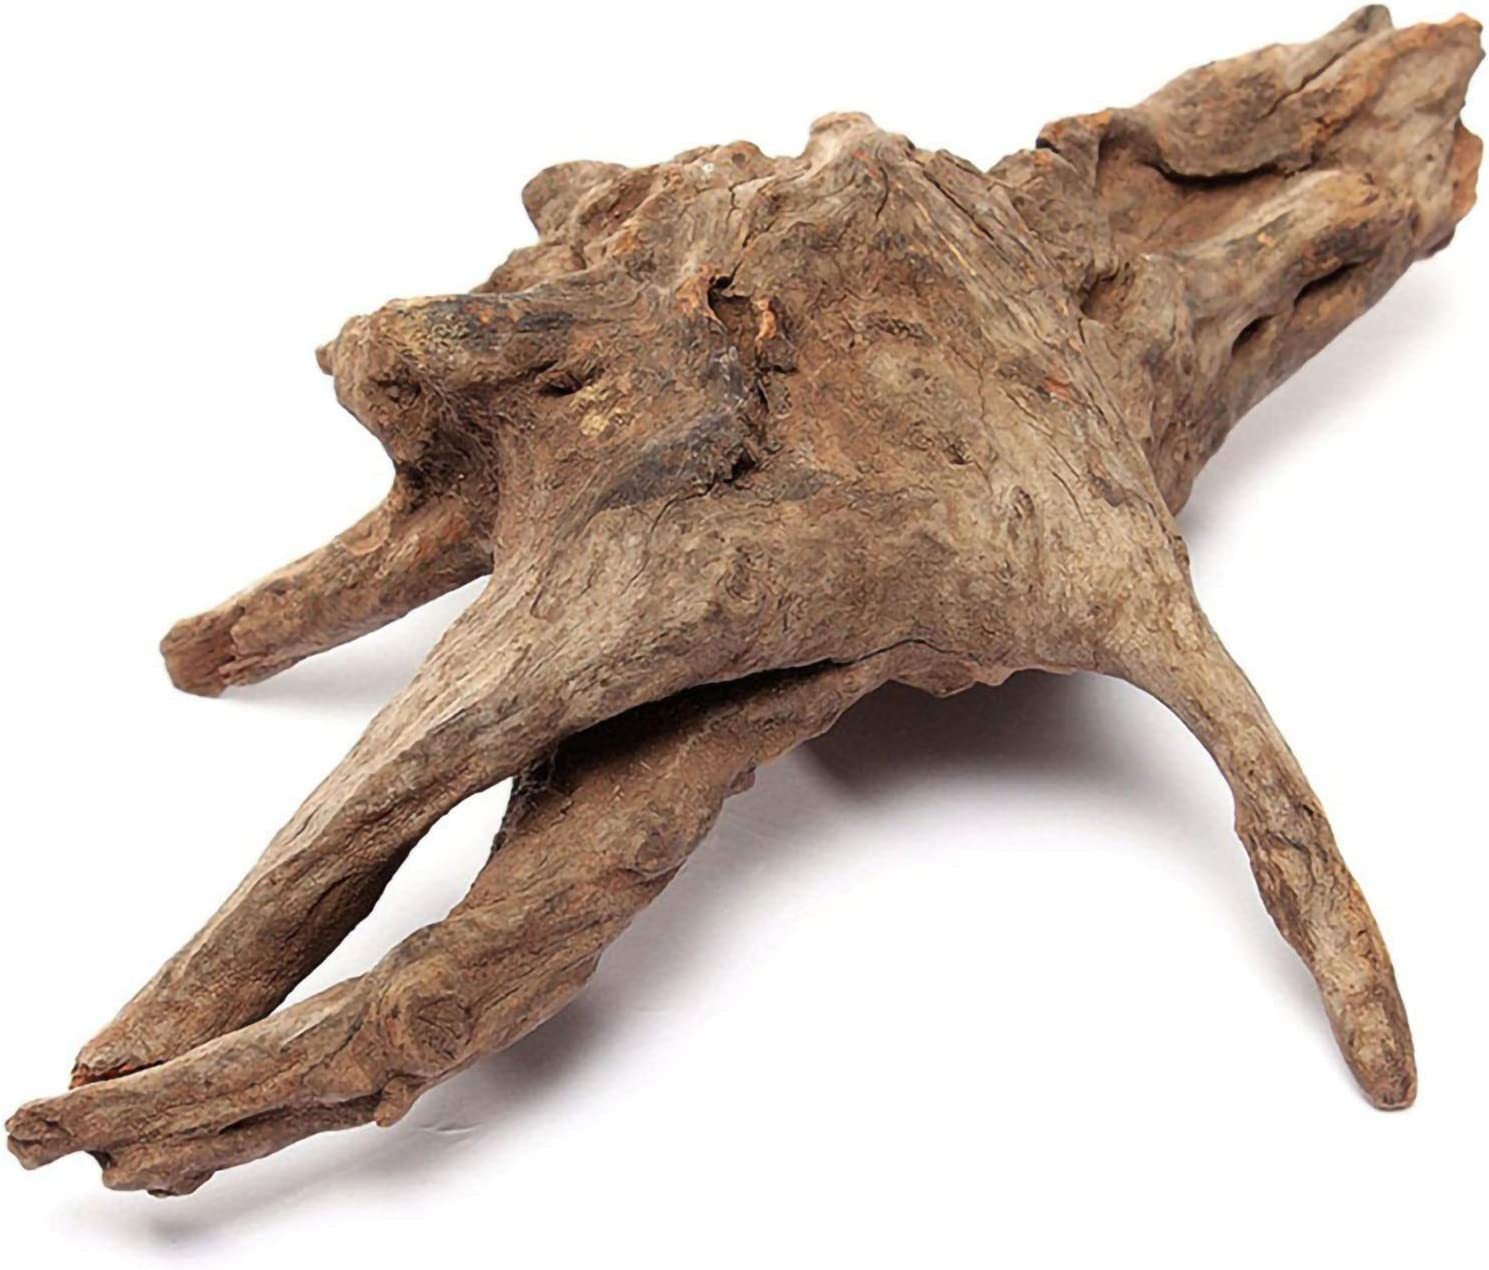 "Hamiledyi Aquarium Decoration Driftwood Log,Large Aquarium Ornament Natural Wood Branch Trunk Stump for Fish Tank Decor Reptiles(L: 7"" to 11"")"